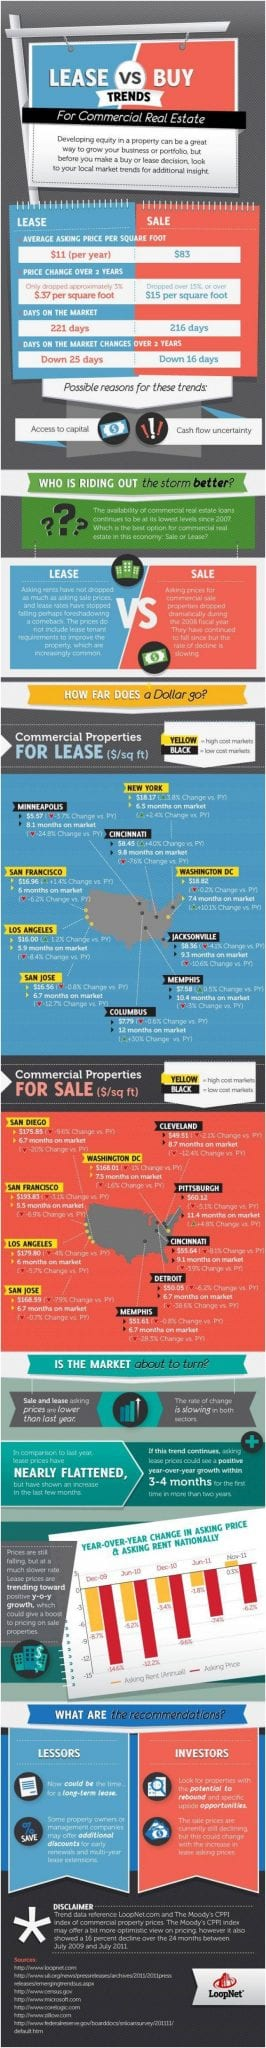 lease-vs-buy-commercial-real-estate